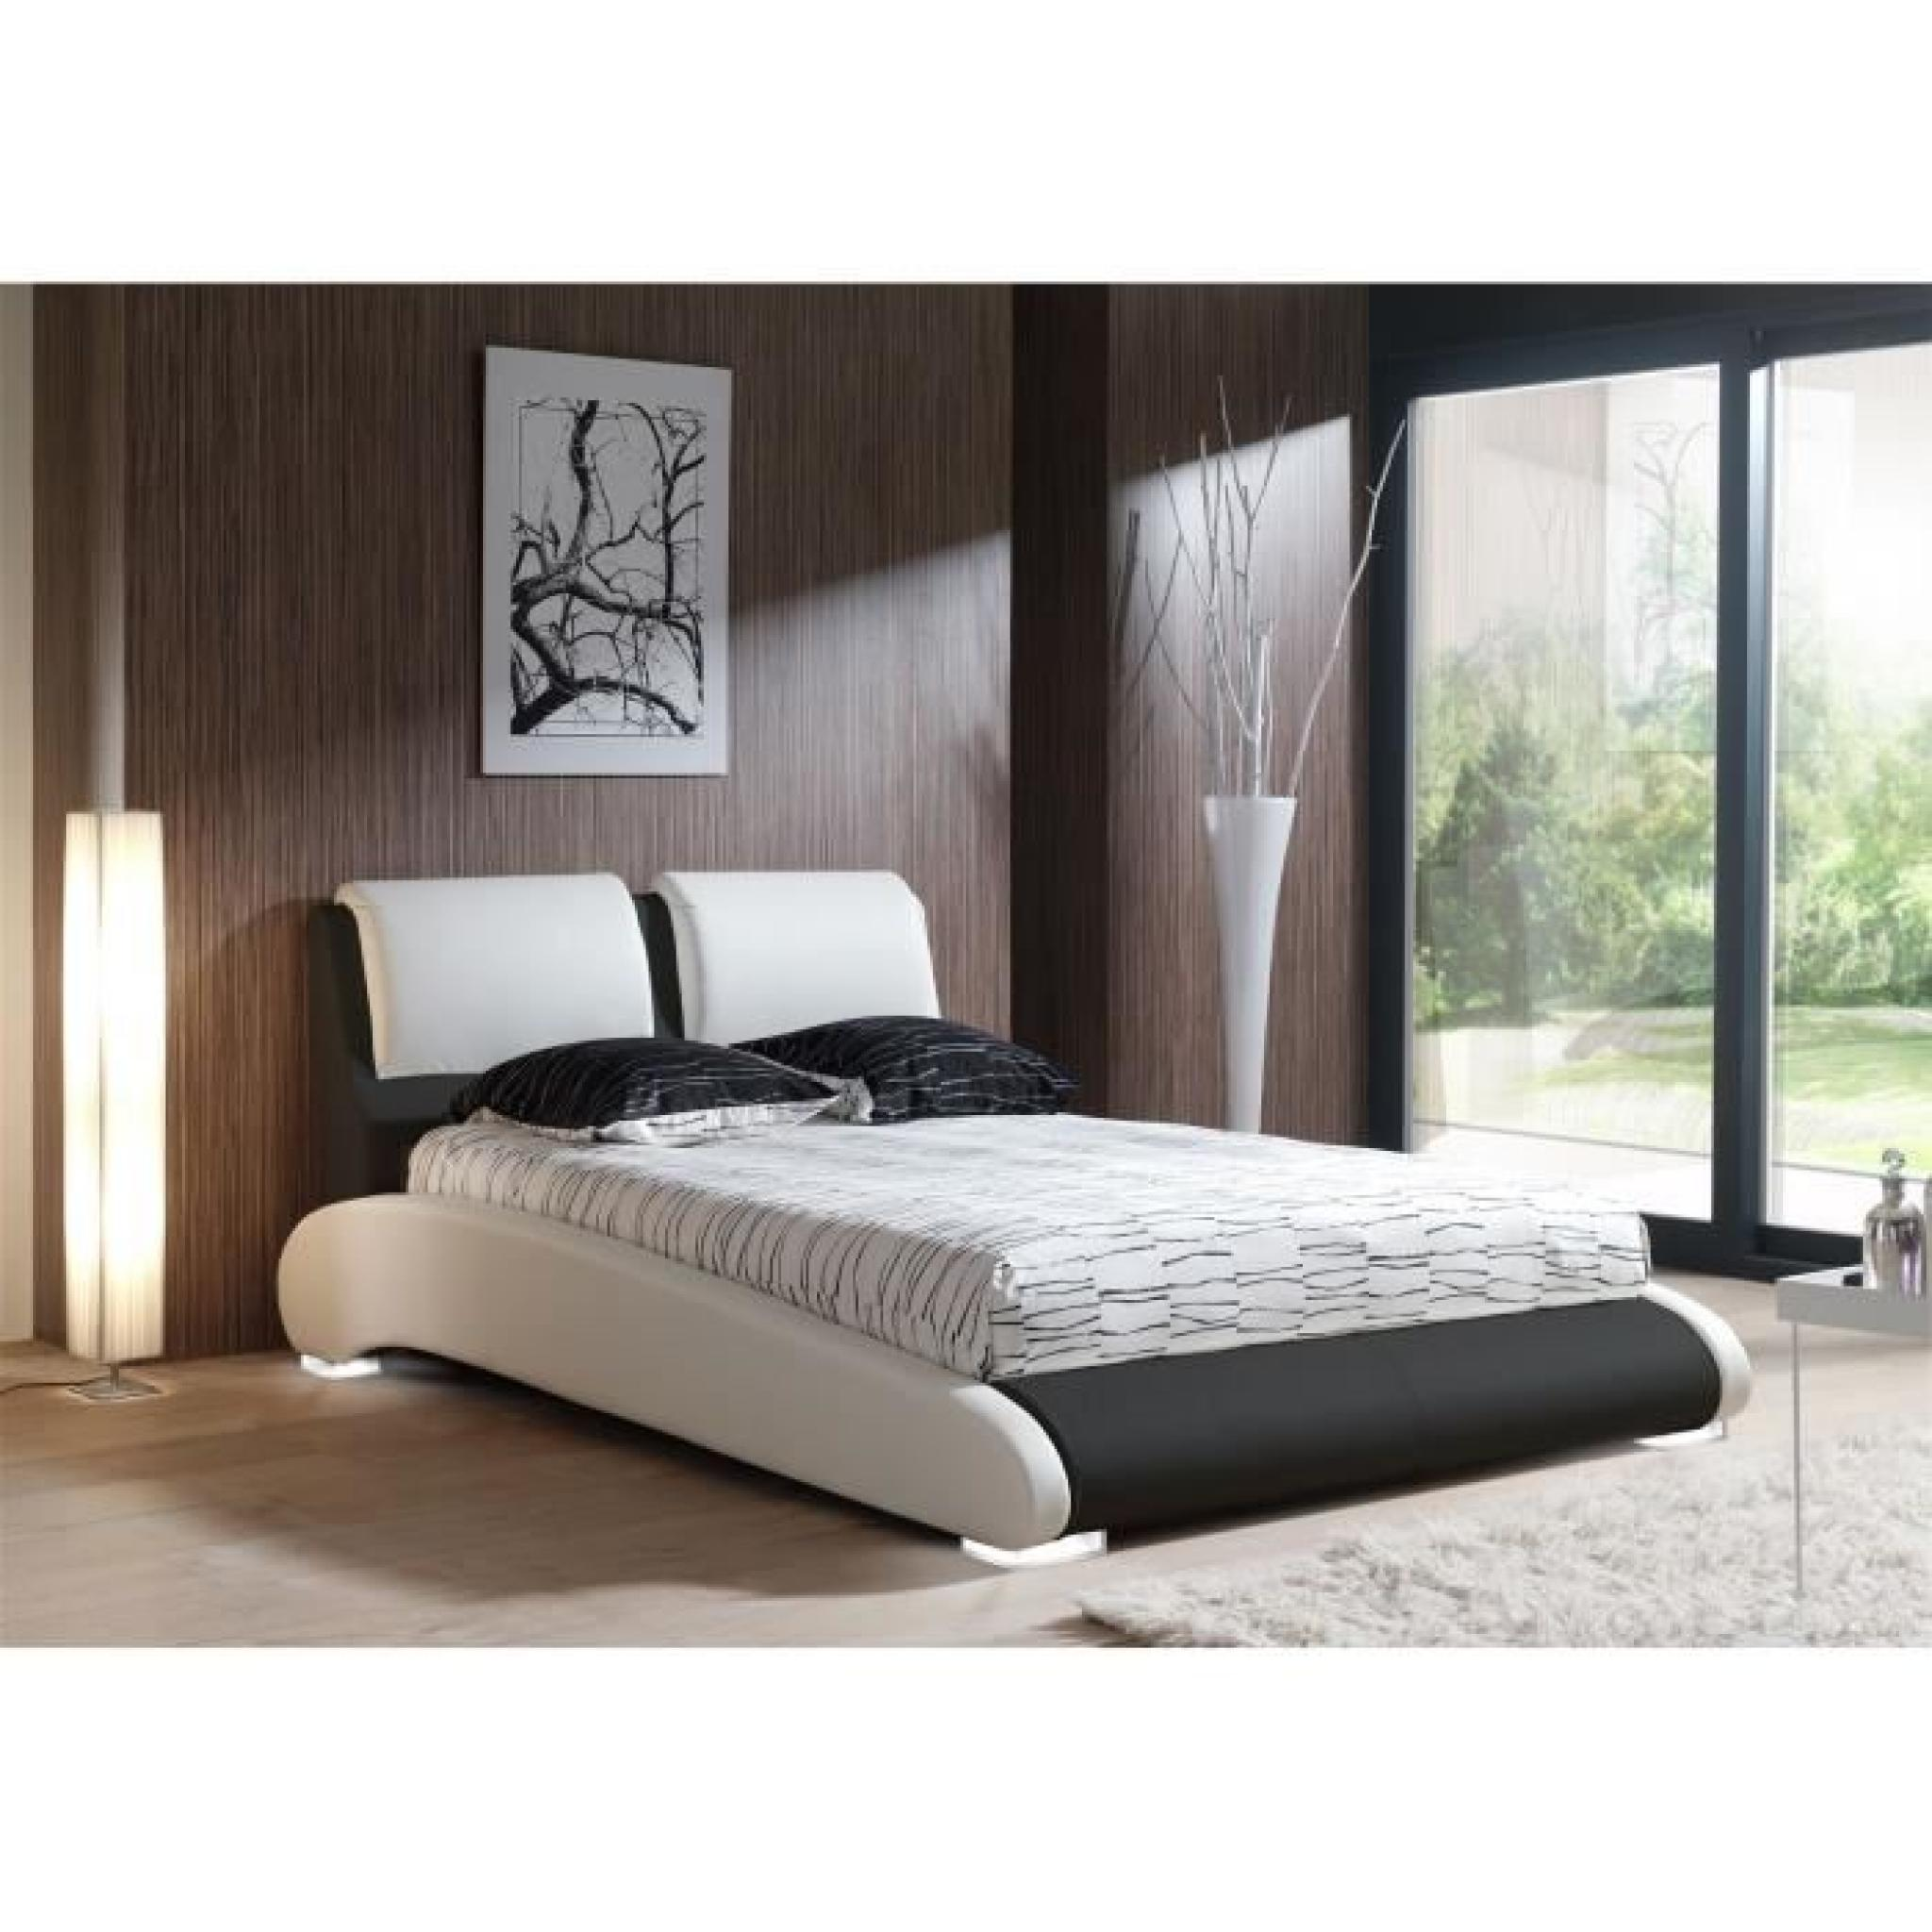 maxi lit adulte sommier 140x190 blanc noir pieds led achat vente lit pas cher couleur et. Black Bedroom Furniture Sets. Home Design Ideas